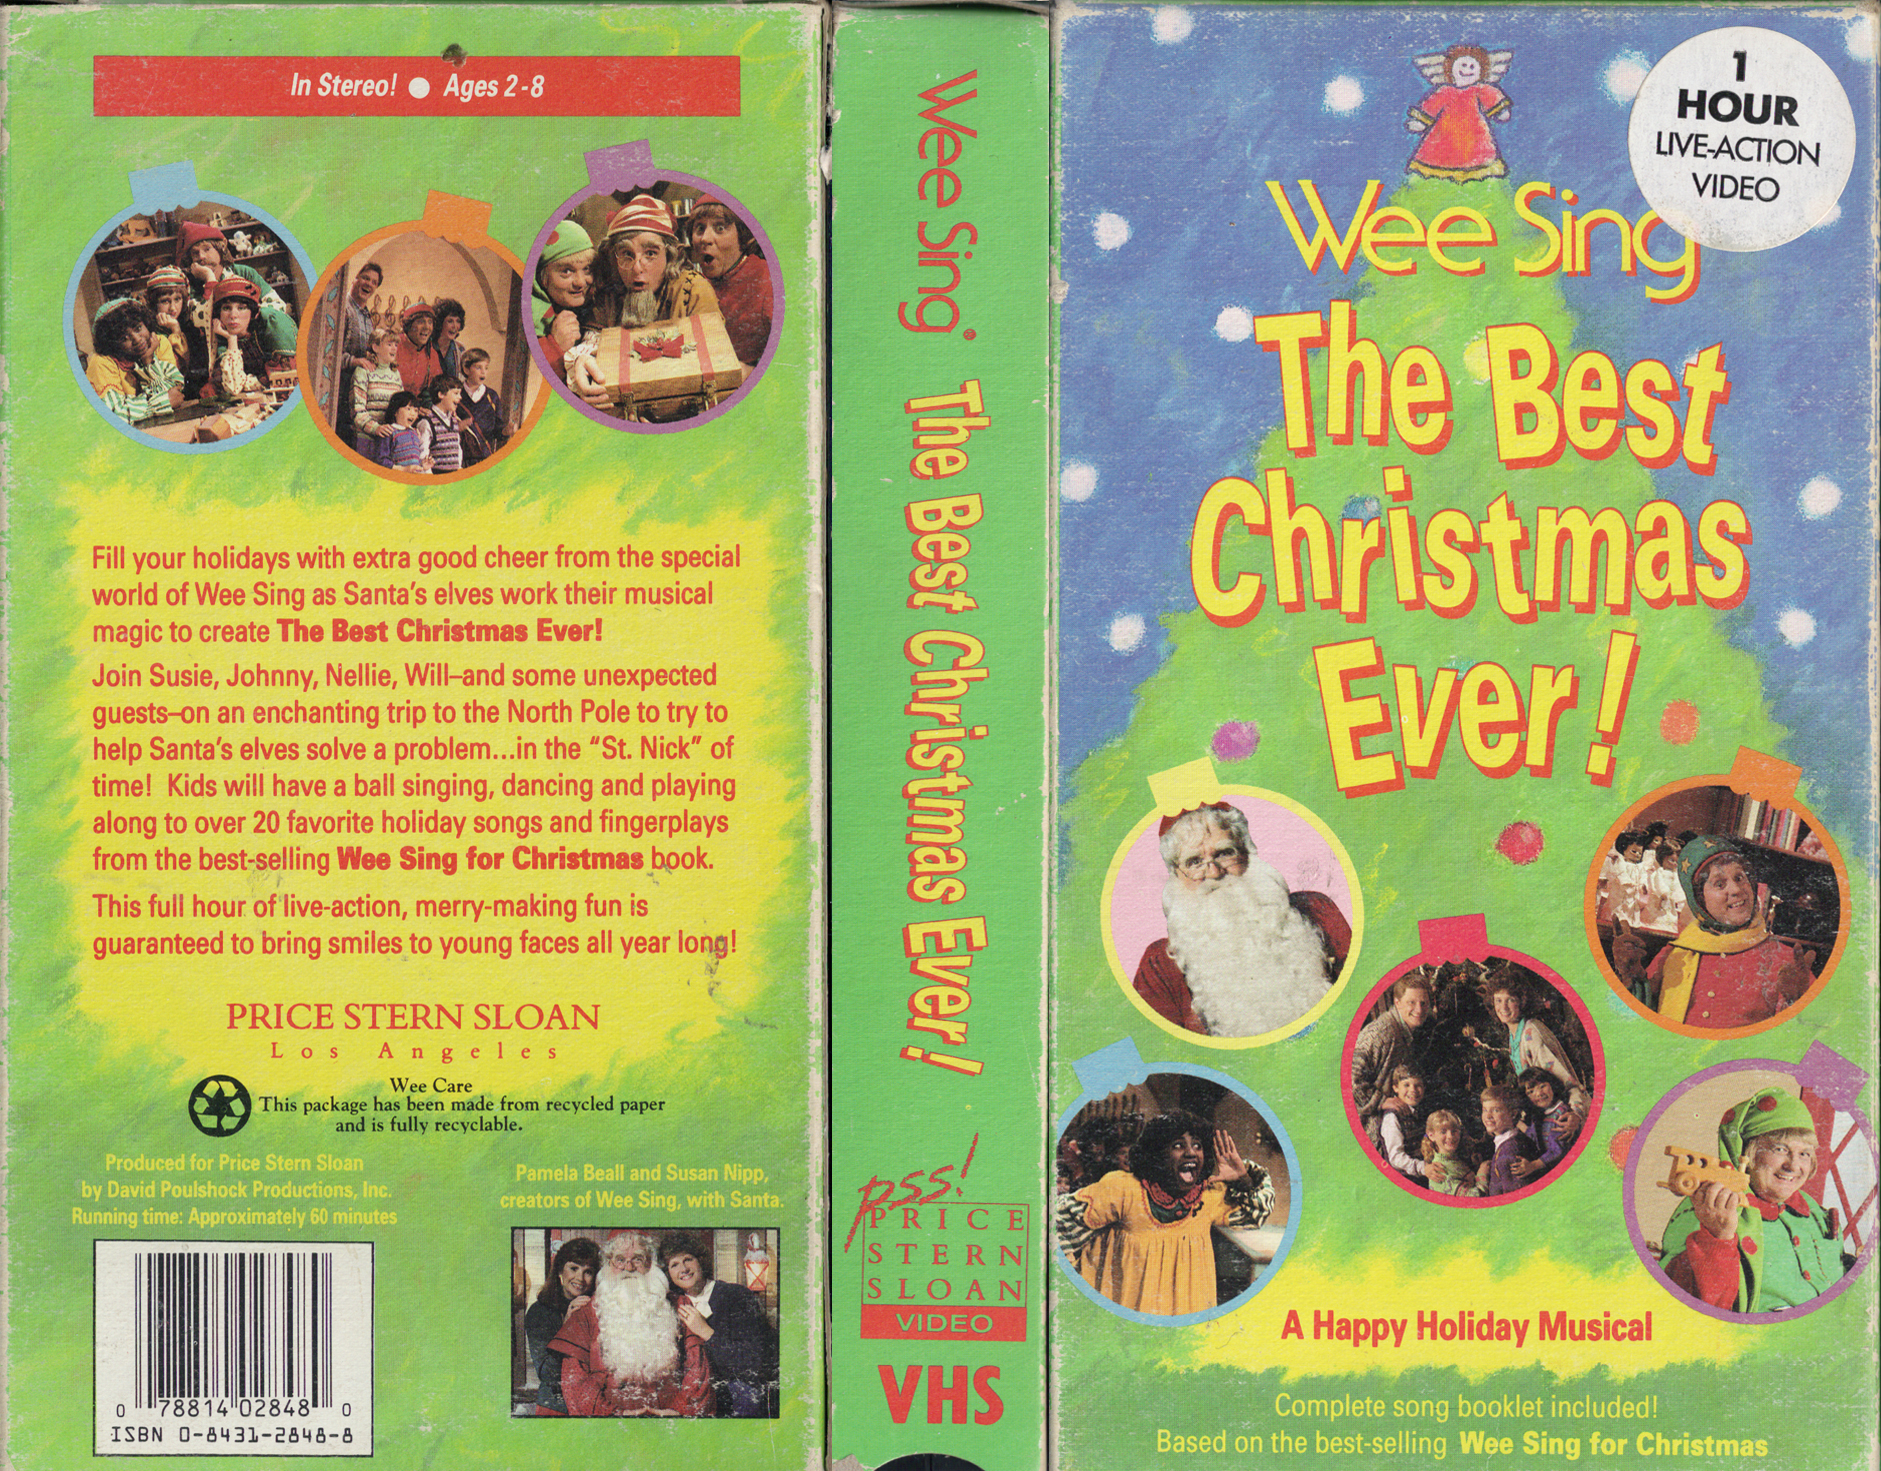 retro daze vhs covers - Wee Sing The Best Christmas Ever